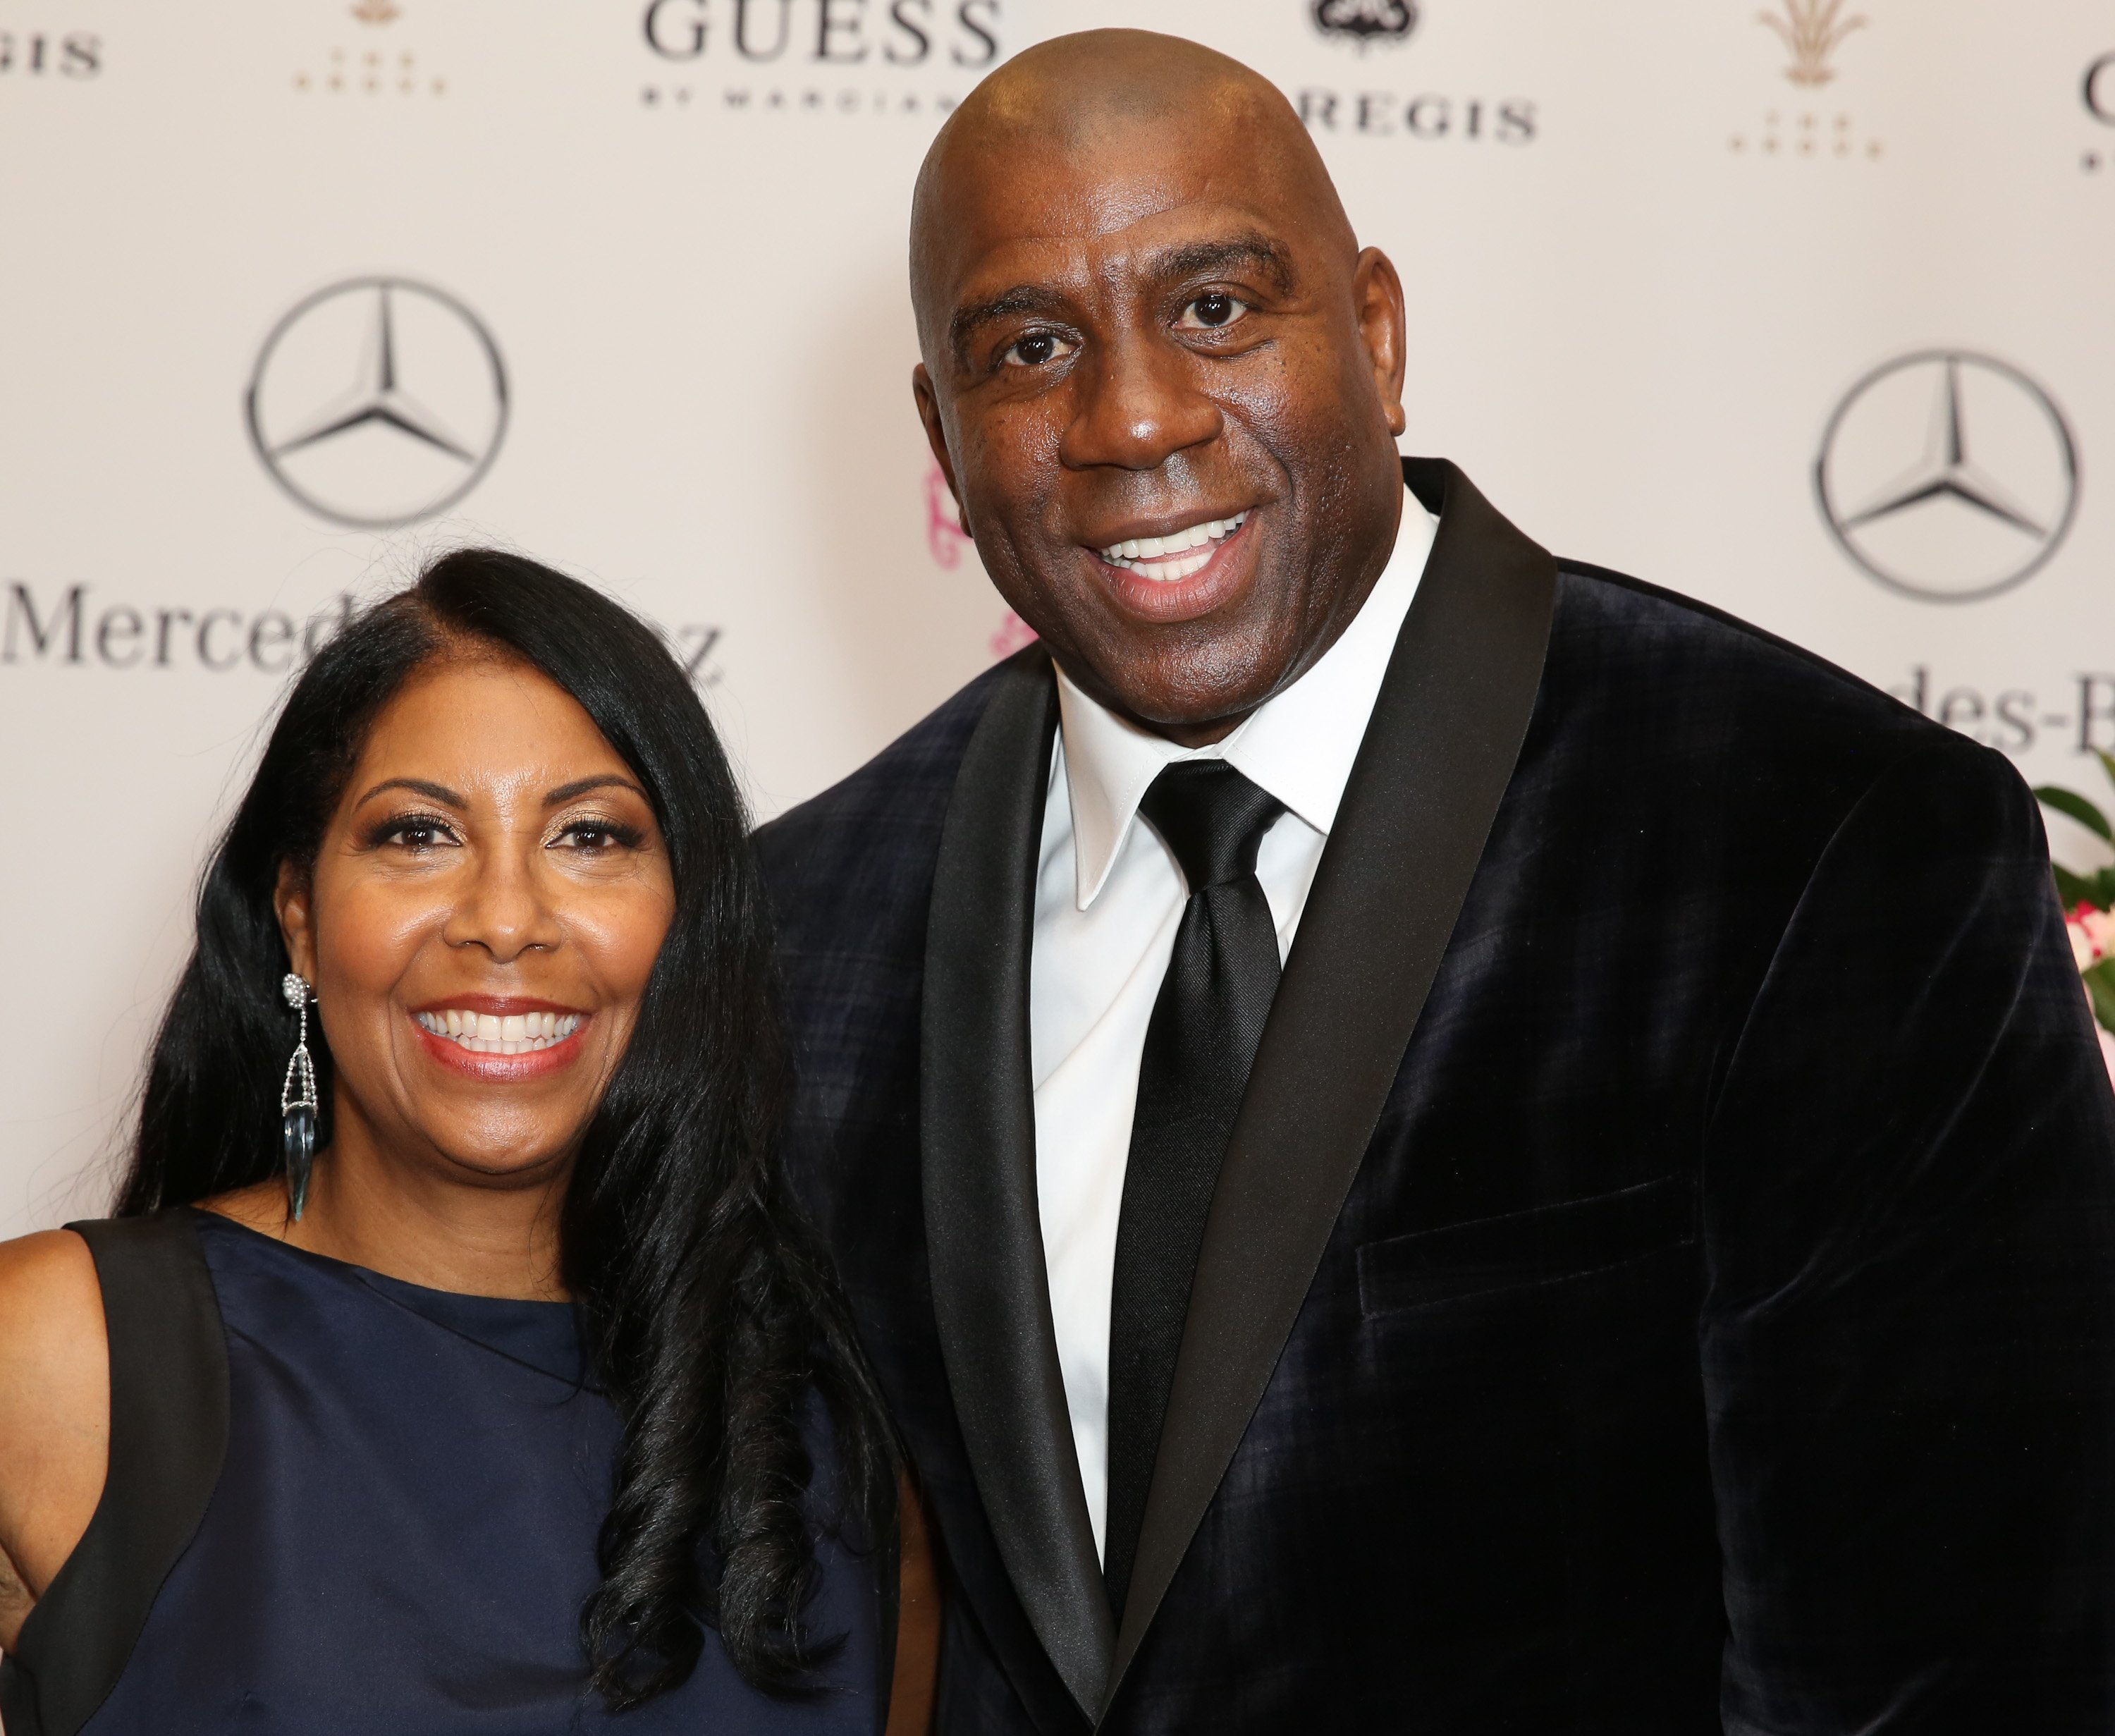 Cookie and Magic Johnson during the Carousel of Hope Ball on October 11, 2014 in Beverly Hills, California. | Source: Getty Images